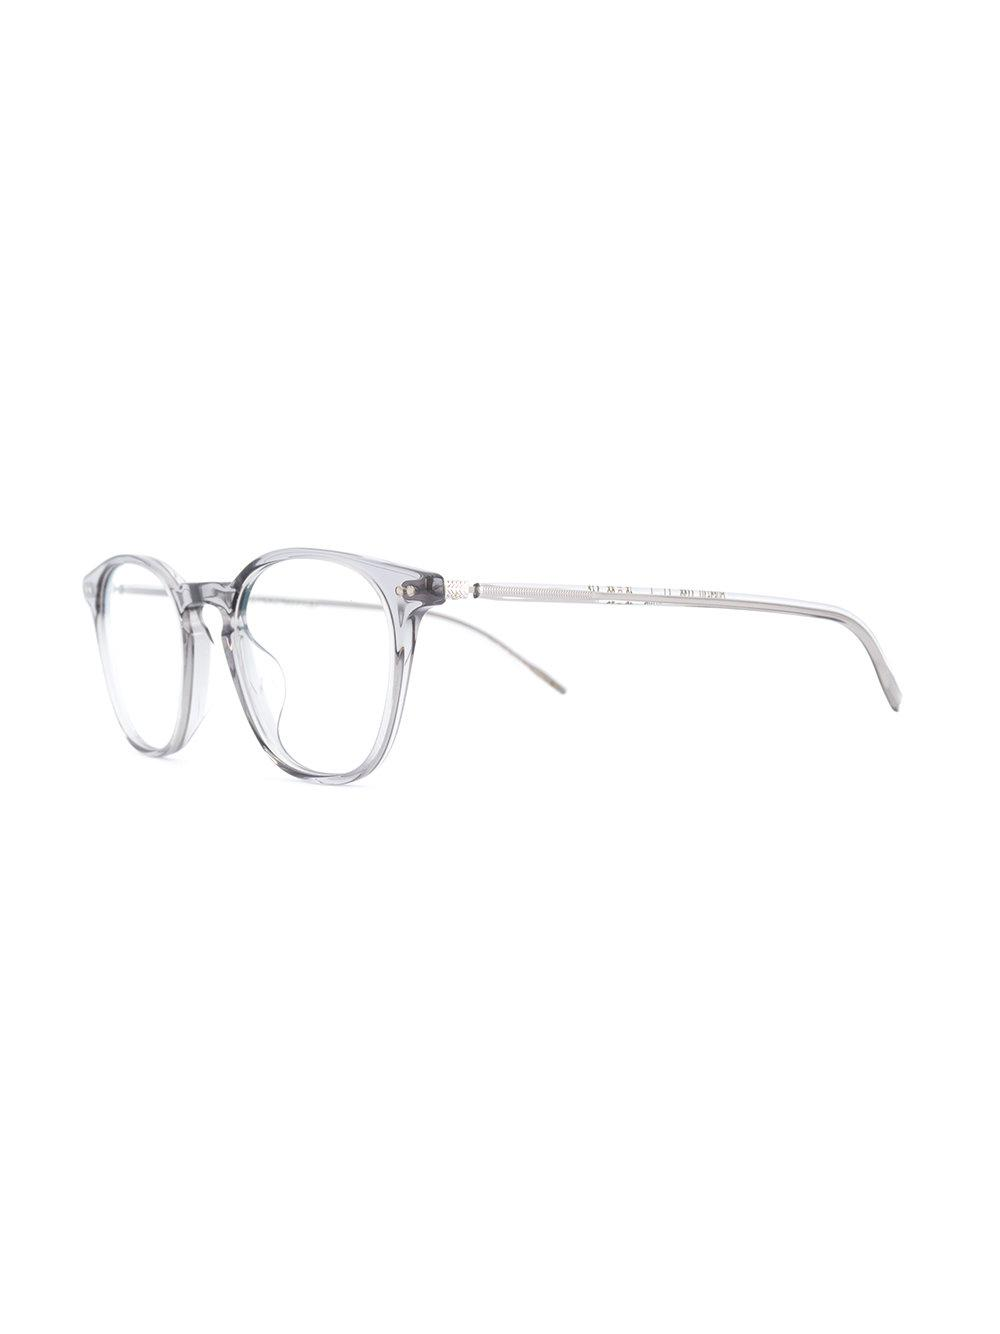 e600e82c5a7 Oliver Peoples Hanks Round Frame Glasses in Metallic - Lyst